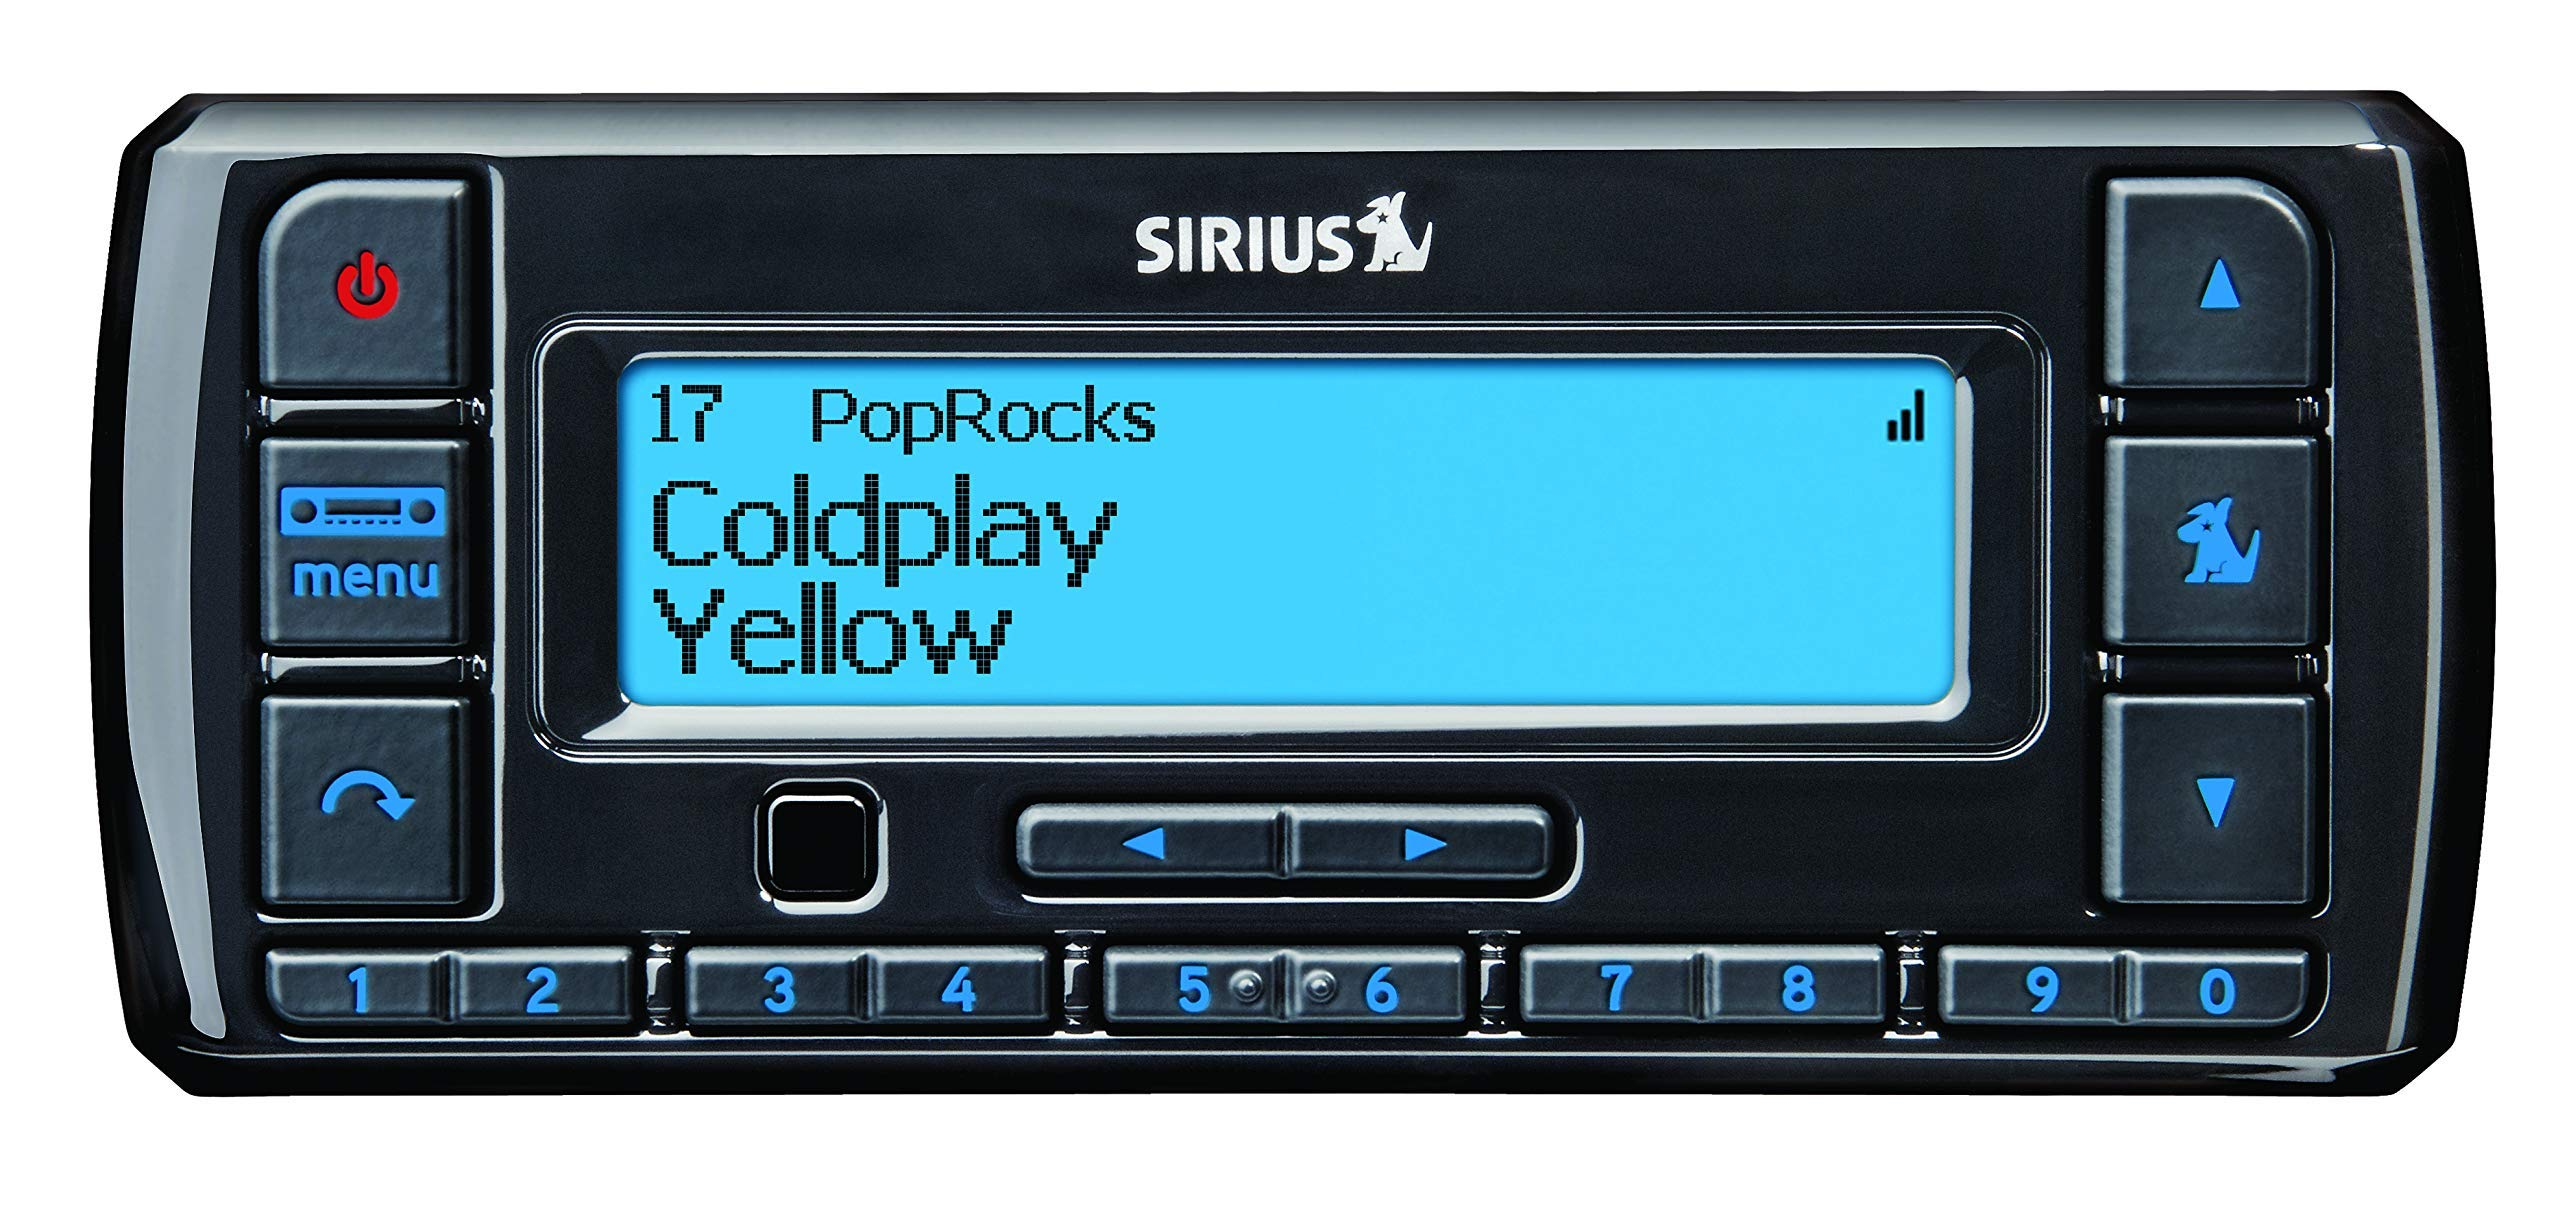 SiriusXM Stratus 7 Satellite Radio with Vehicle Kit | 3 MONTHS ALL ACCESS FREE WITH SUBSCRIPTION (Renewed) by SiriusXM